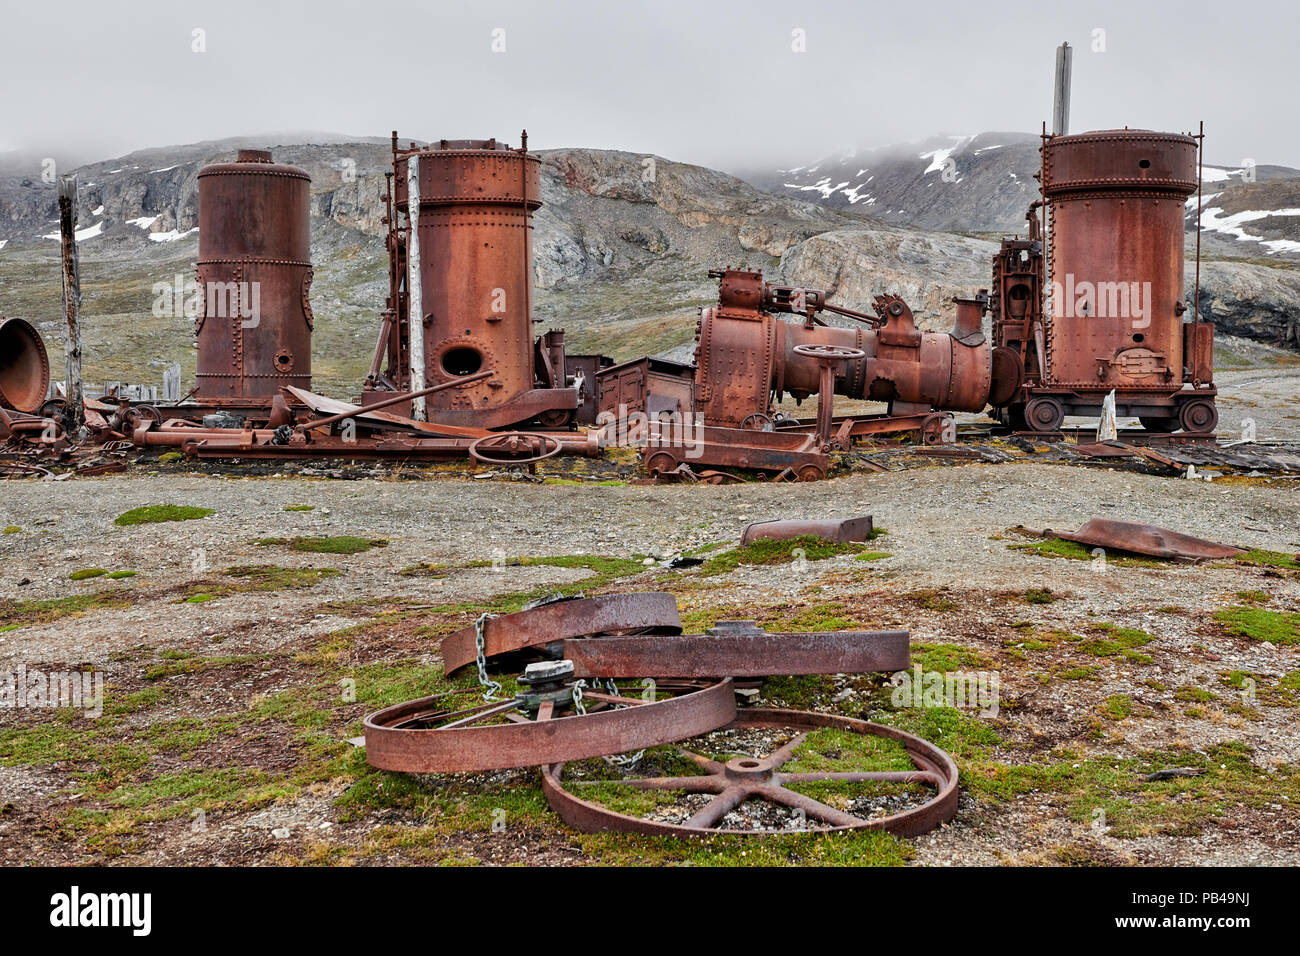 remains of New London marble quarry, Camp Mansfield, Ny-Ålesund, Kongsfjord, Svalbard or Spitsbergen, Europe - Stock Image